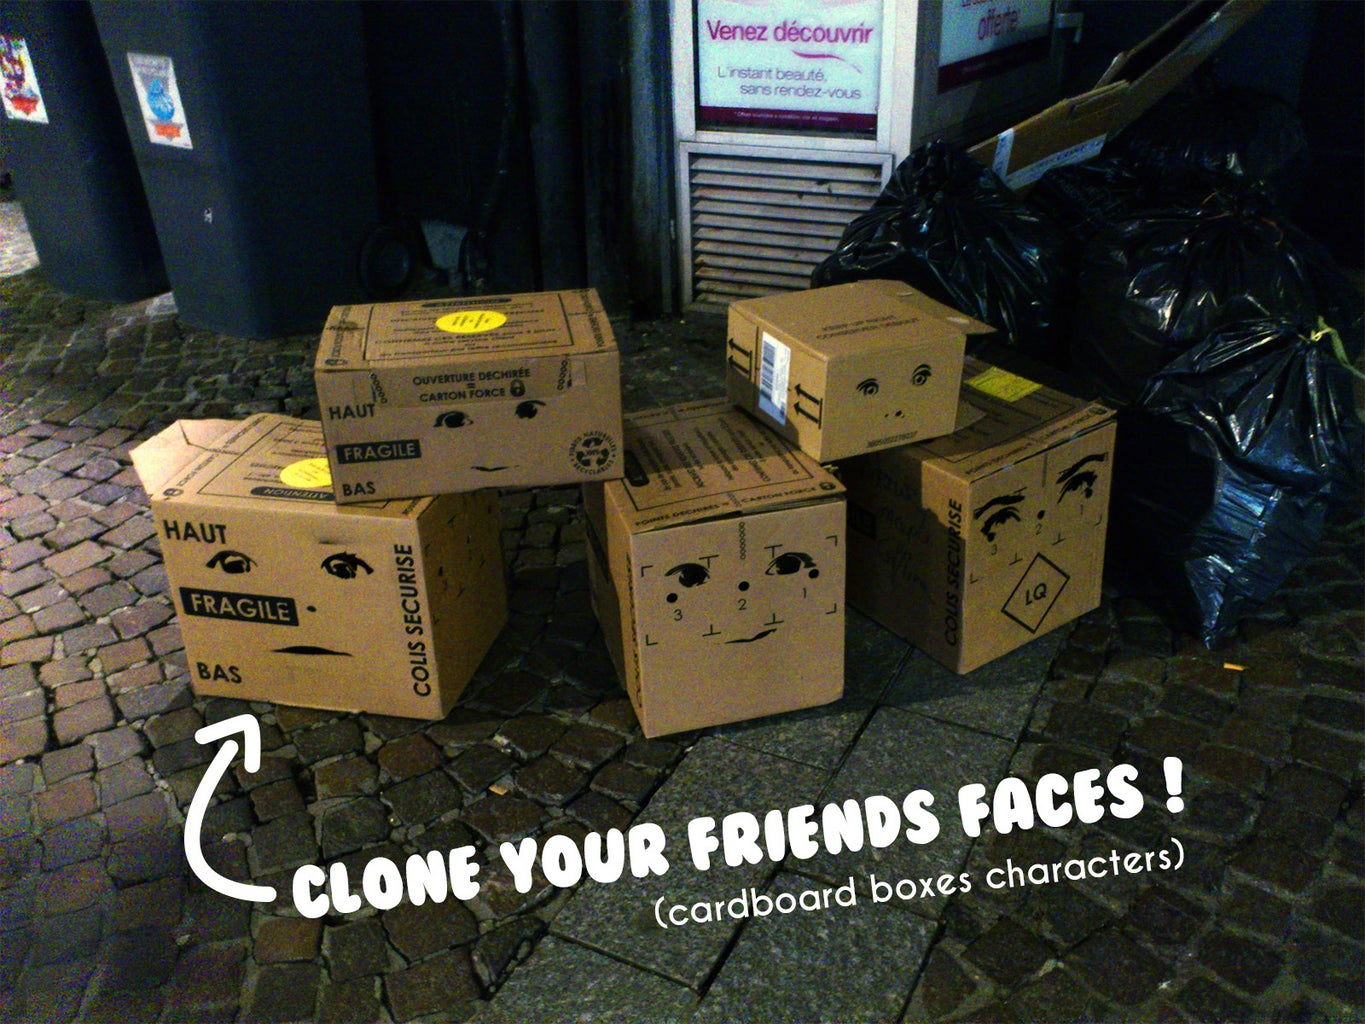 Clone Your Friends Faces on Cardboard Boxes ! (Cardboard Boxes Characters)